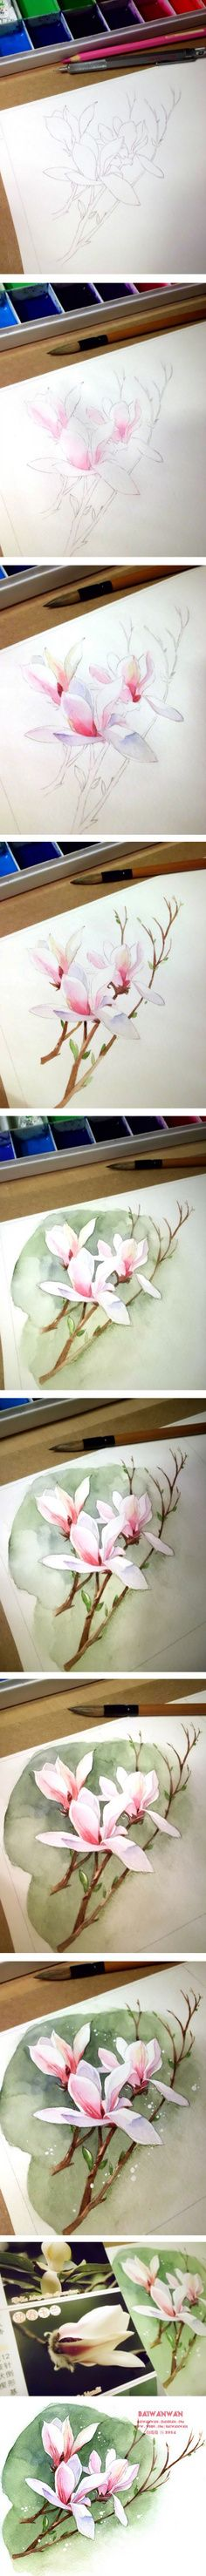 Beautiful step by step photos to complete this lovely watercolor flower.